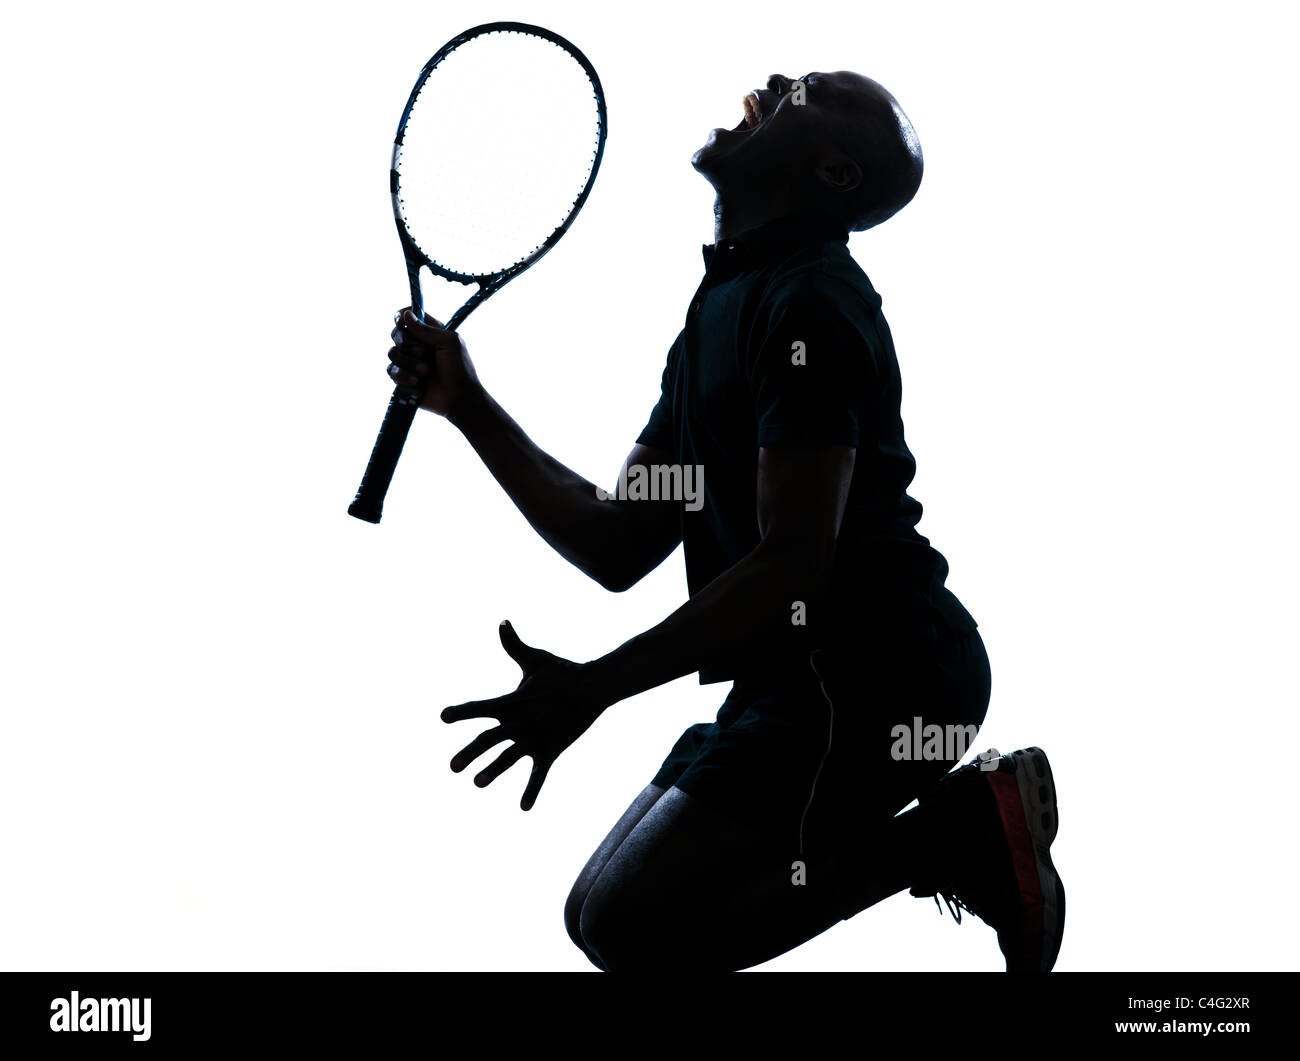 on man african afro american playing tennis player kneeling screaming on studio isolated on white background - Stock Image